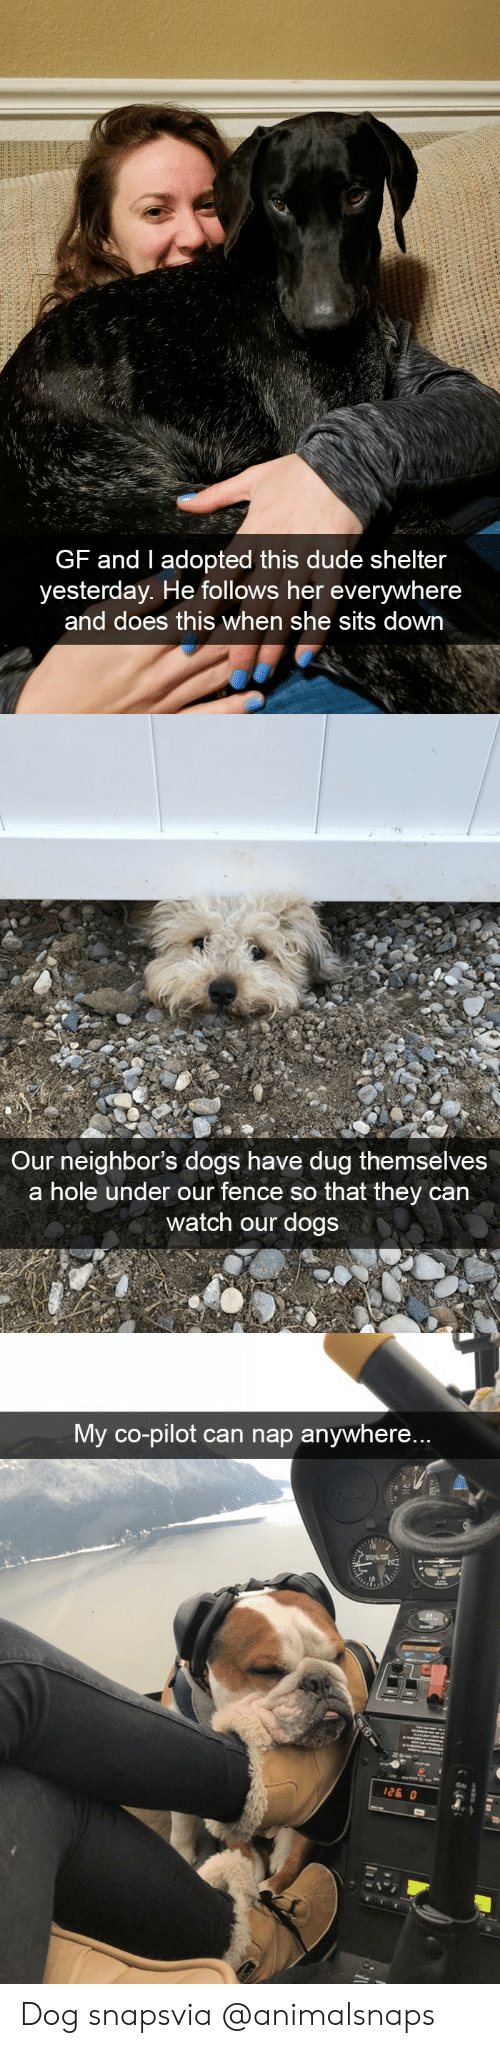 Pilots: GF and I adopted this dude shelter  yesterday. He follows her everywhere  and does this when she sits down   Our neighbor's dogs have dug themselves  a hole under our fence so that they can  watch our dogs   My co-pilot can nap anywhere...  ON Dog snapsvia @animalsnaps